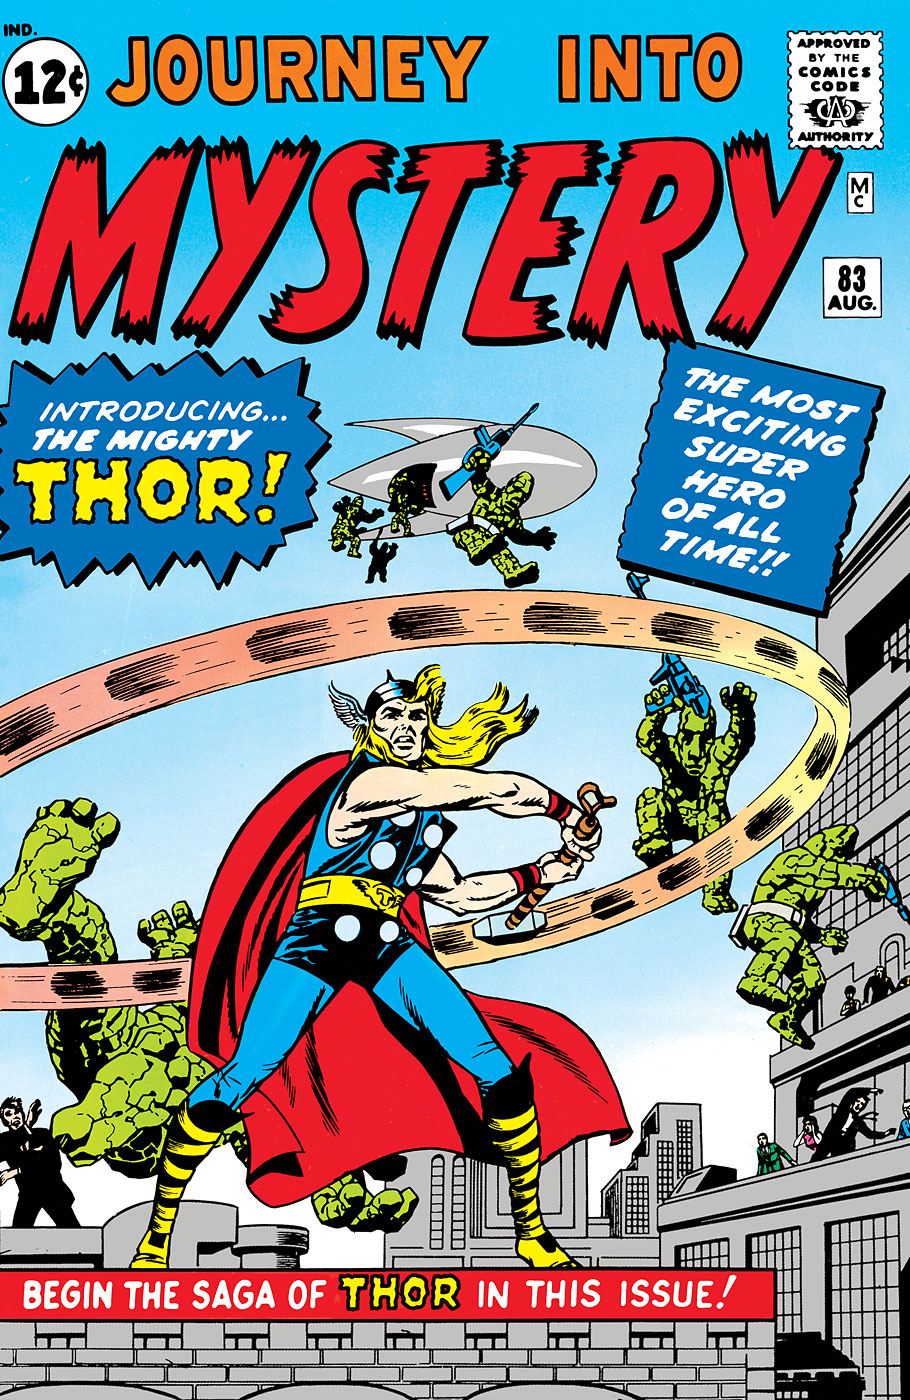 Thor, the Asgardian god of thunder, first appeared in Marvel comics in 1962 in <i>Journey into Mystery</i> #83.